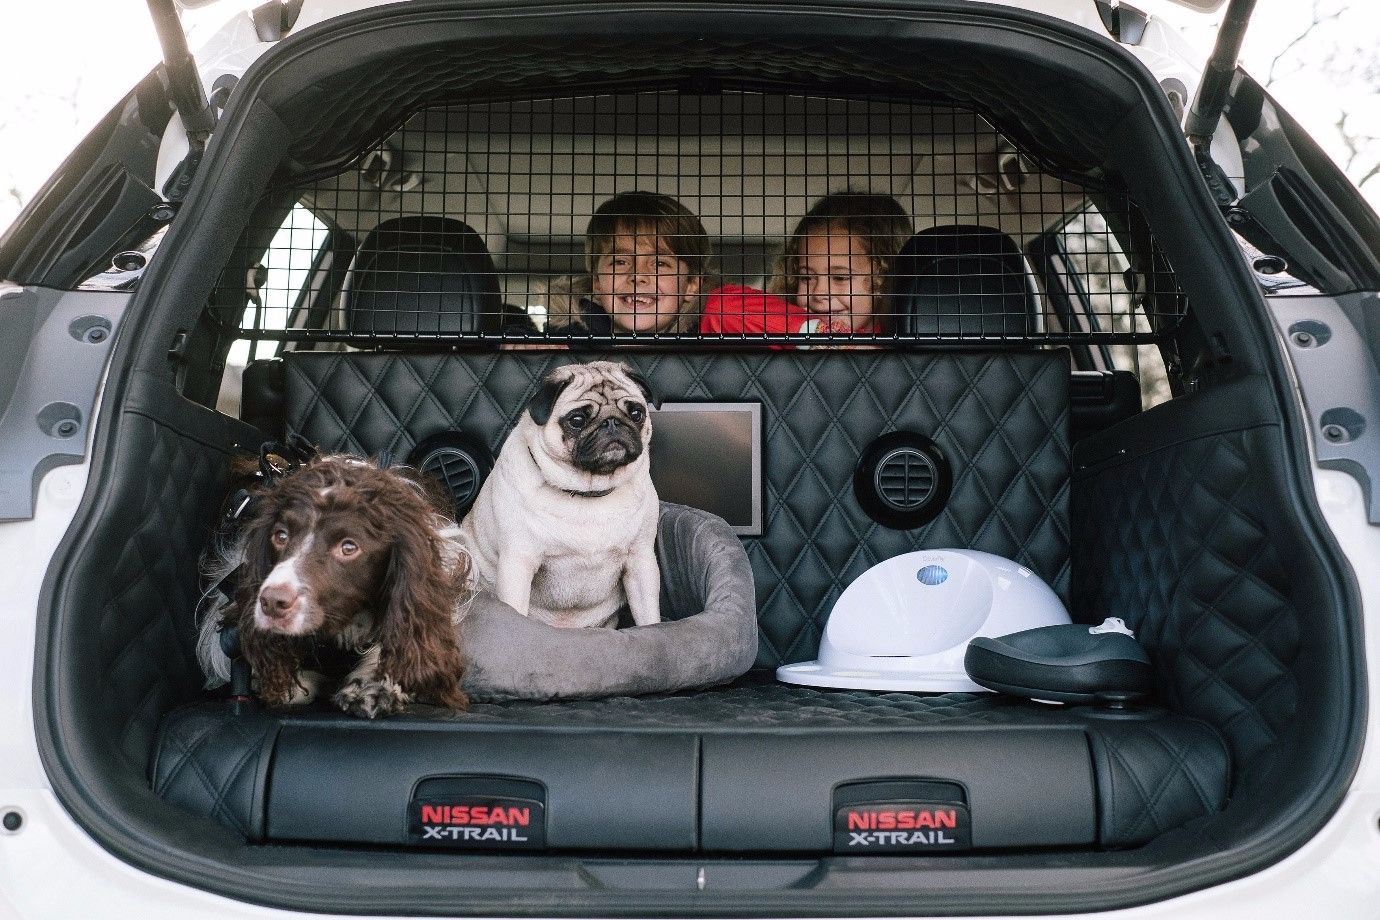 Nissan X-Trail 4Dogs – A Concept for our Four-legged Friends